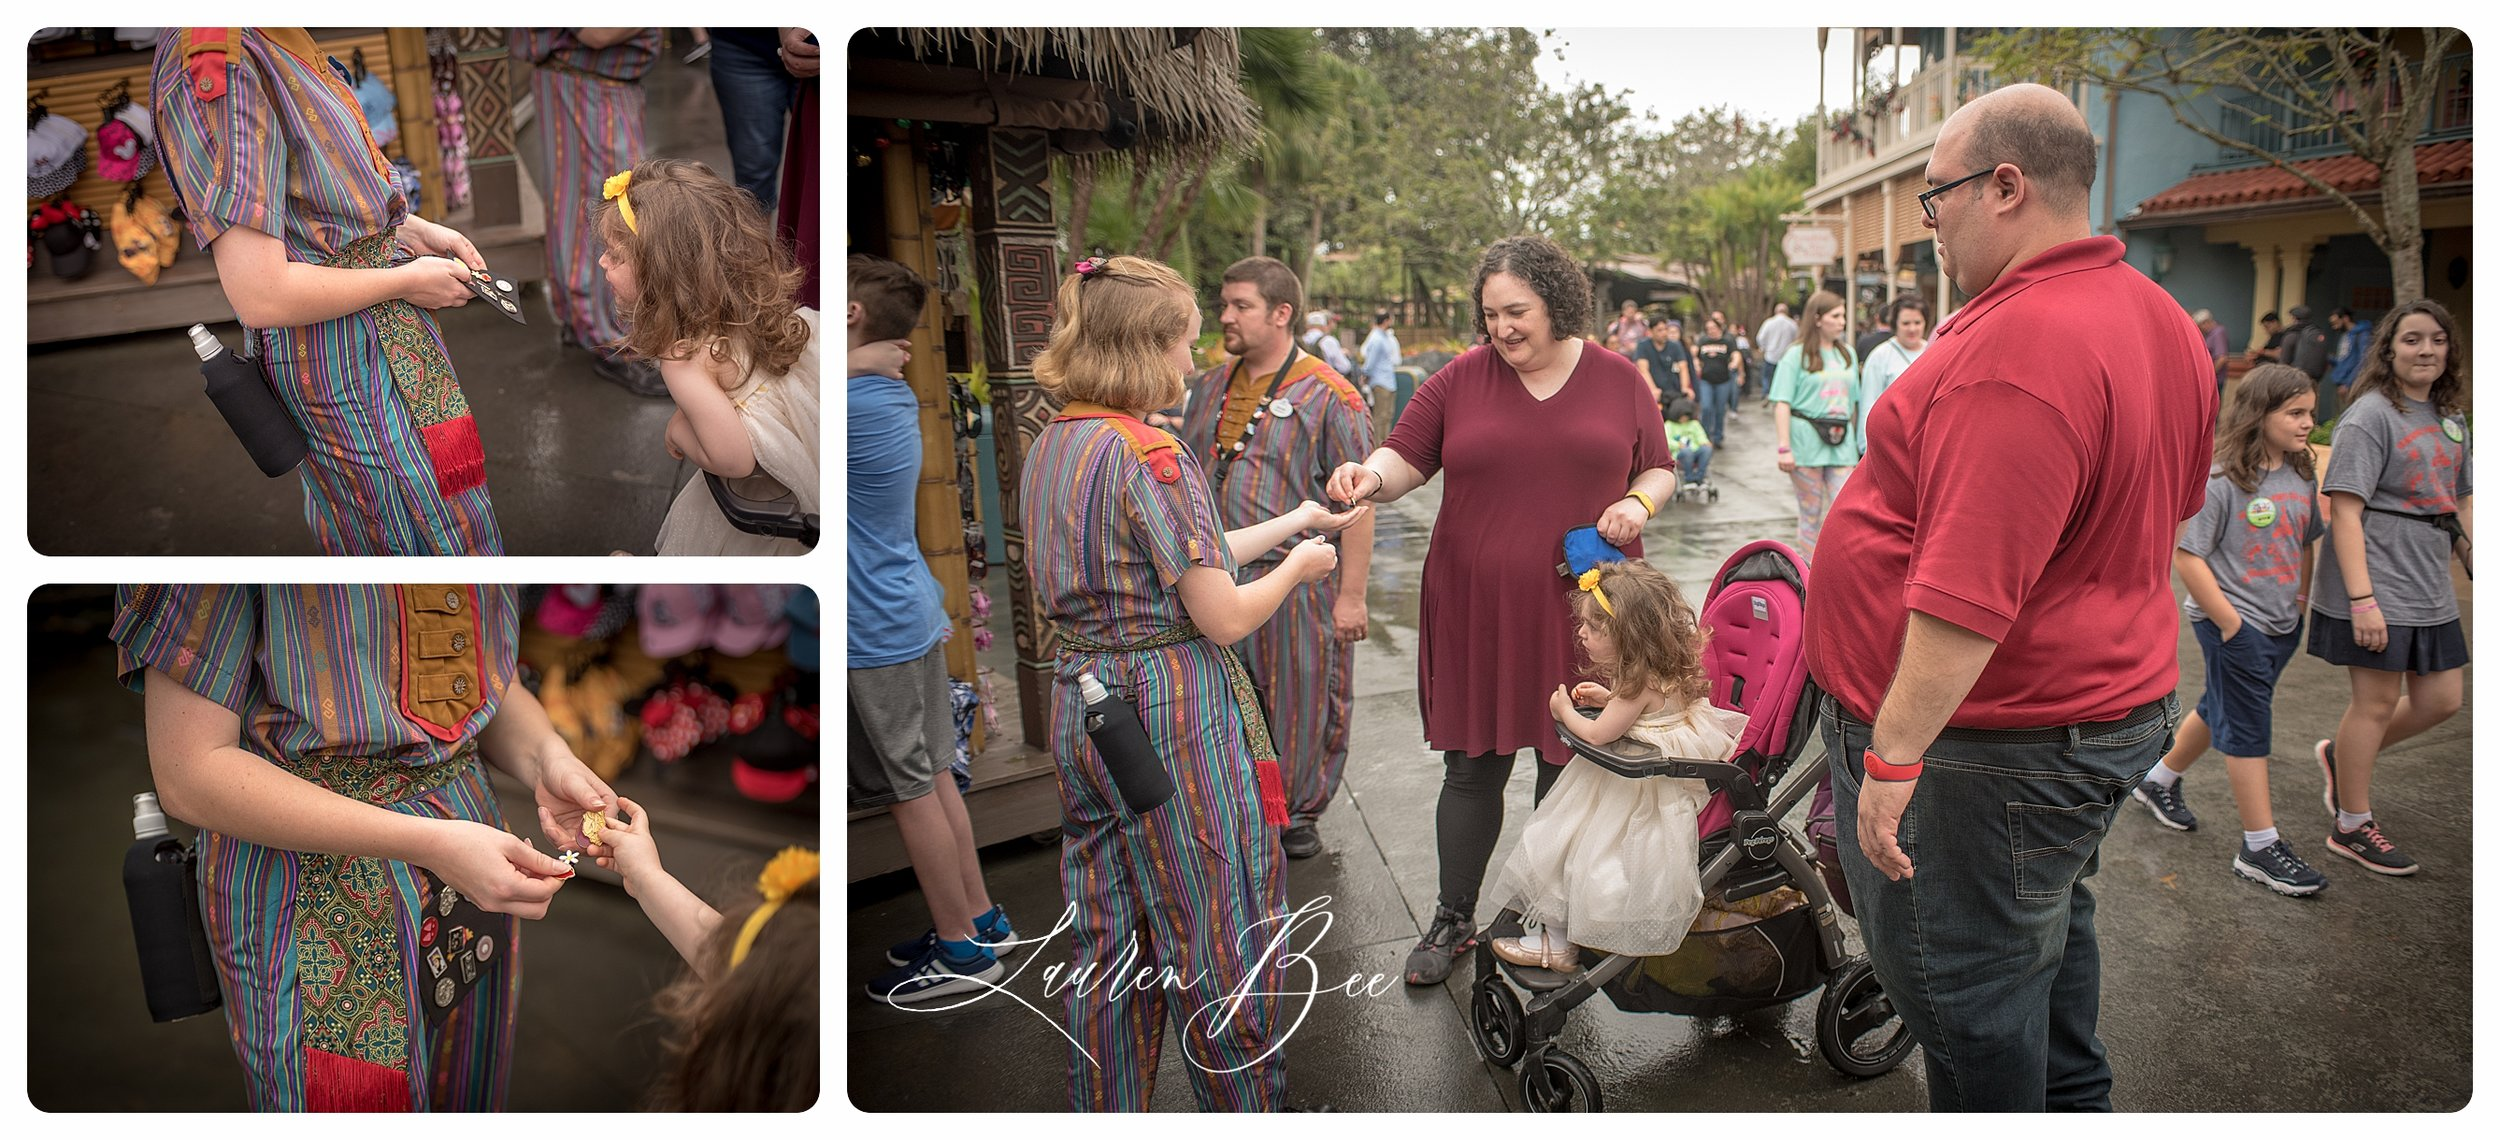 We stopped for some pin-trading, before heading back to Fantasyland.